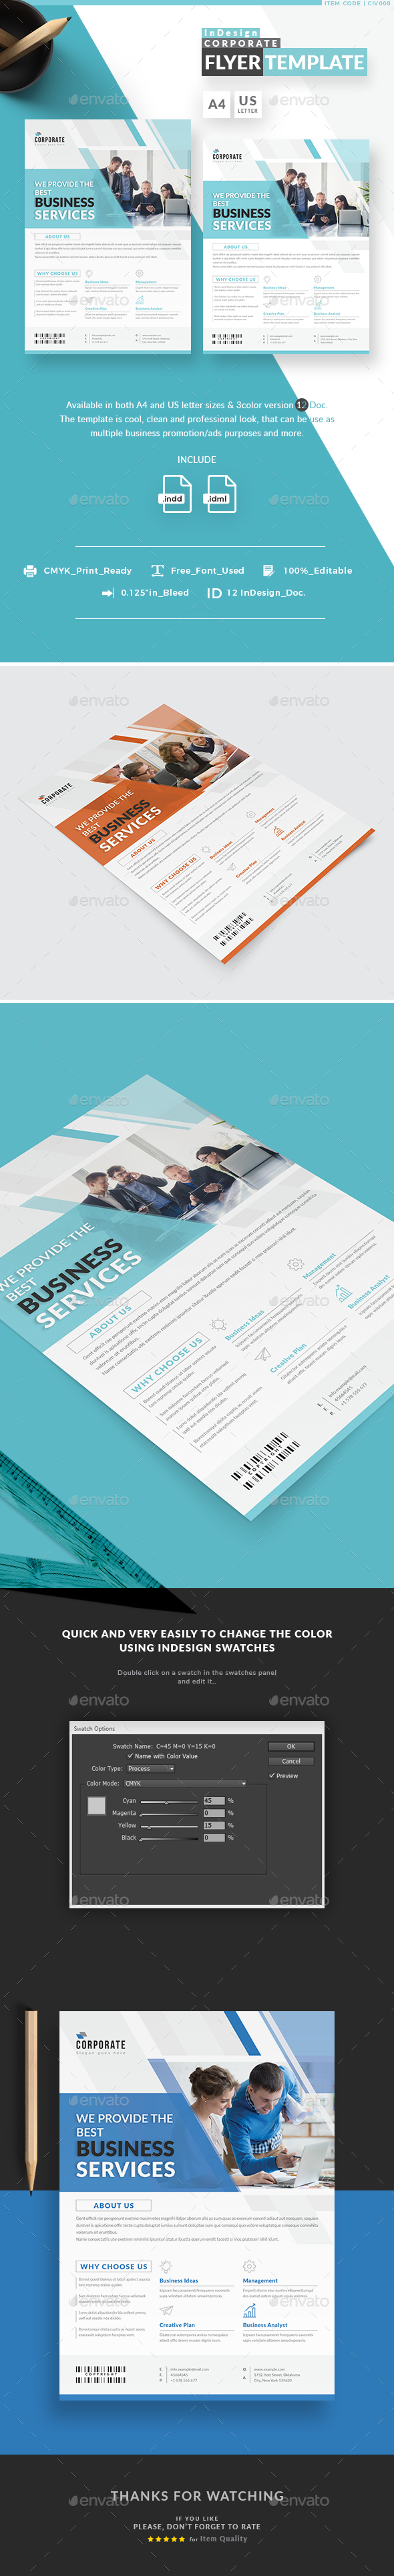 InDesign Corporate Flyer Templates - Corporate Flyers